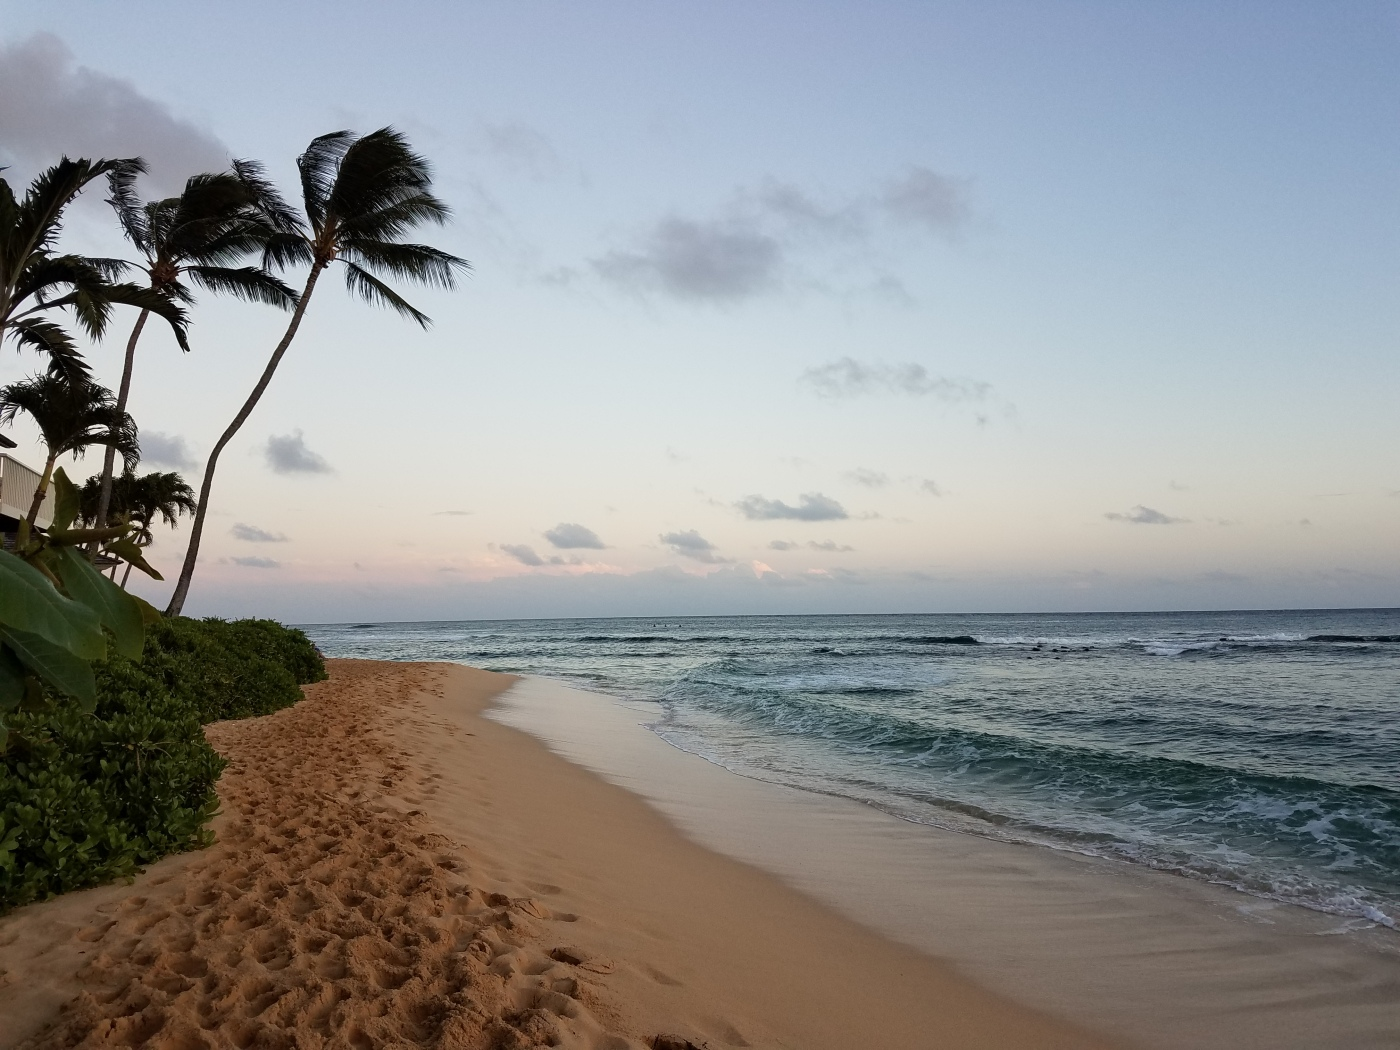 Poipu Beach at sunset